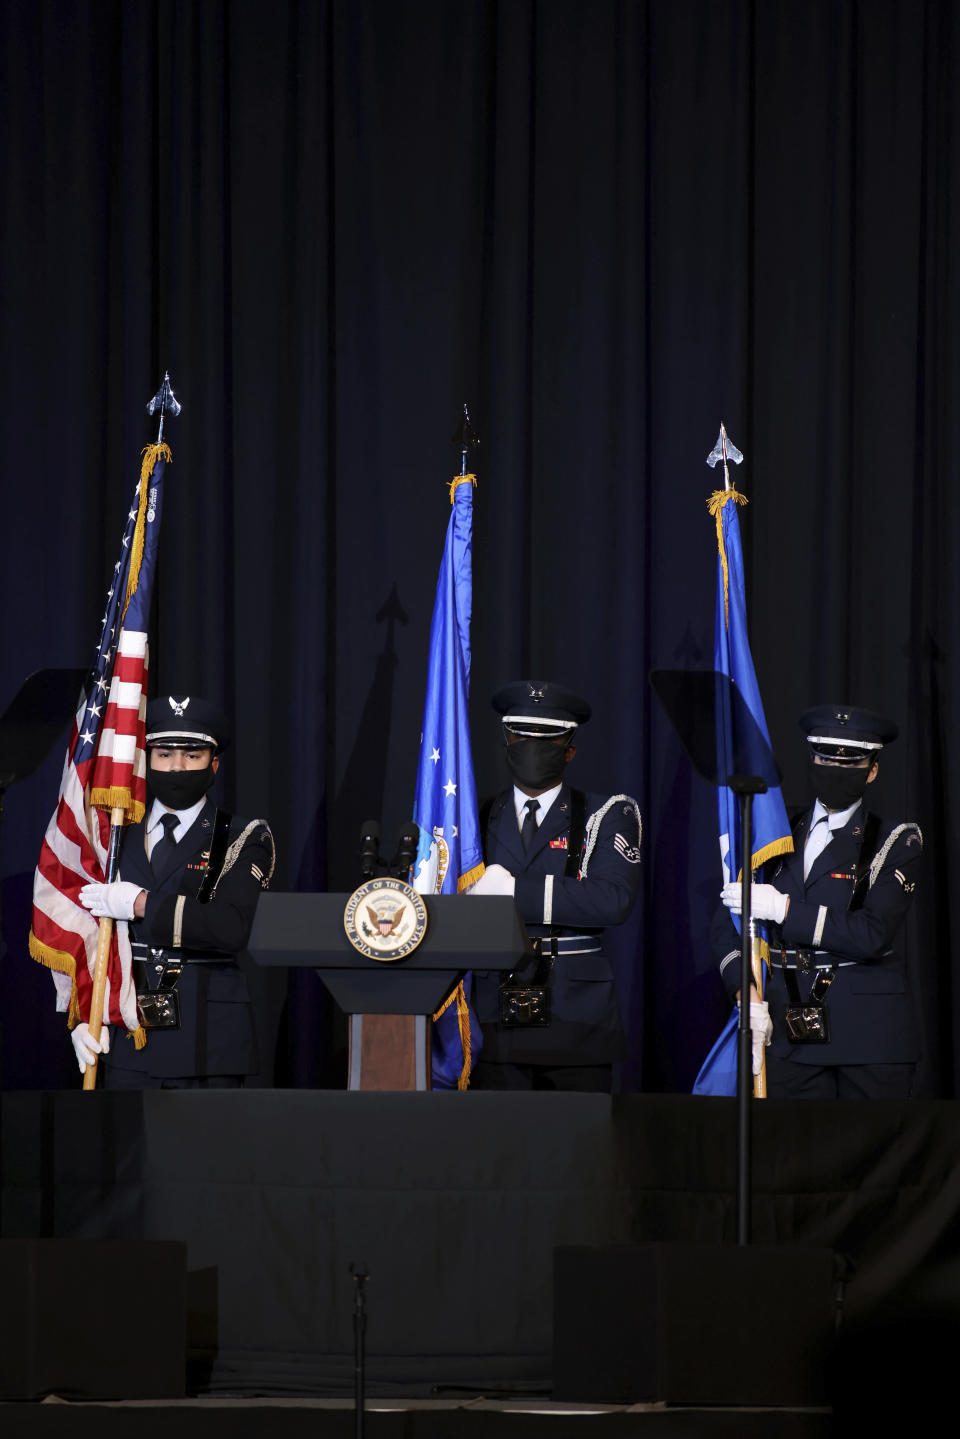 Members of the 88th Air Base Wing Honor Guard from Wright-Patterson Air Force Base in in Ohio post the colors during a memorial service for the late Air Force Brig. Gen. Chuck Yeager in Charleston, W.Va., on Friday, Jan. 15, 2021. Yeager died last month at age 97. The West Virginia native in 1947 became the first person to fly faster than sound. (AP Photo/Chris Jackson)